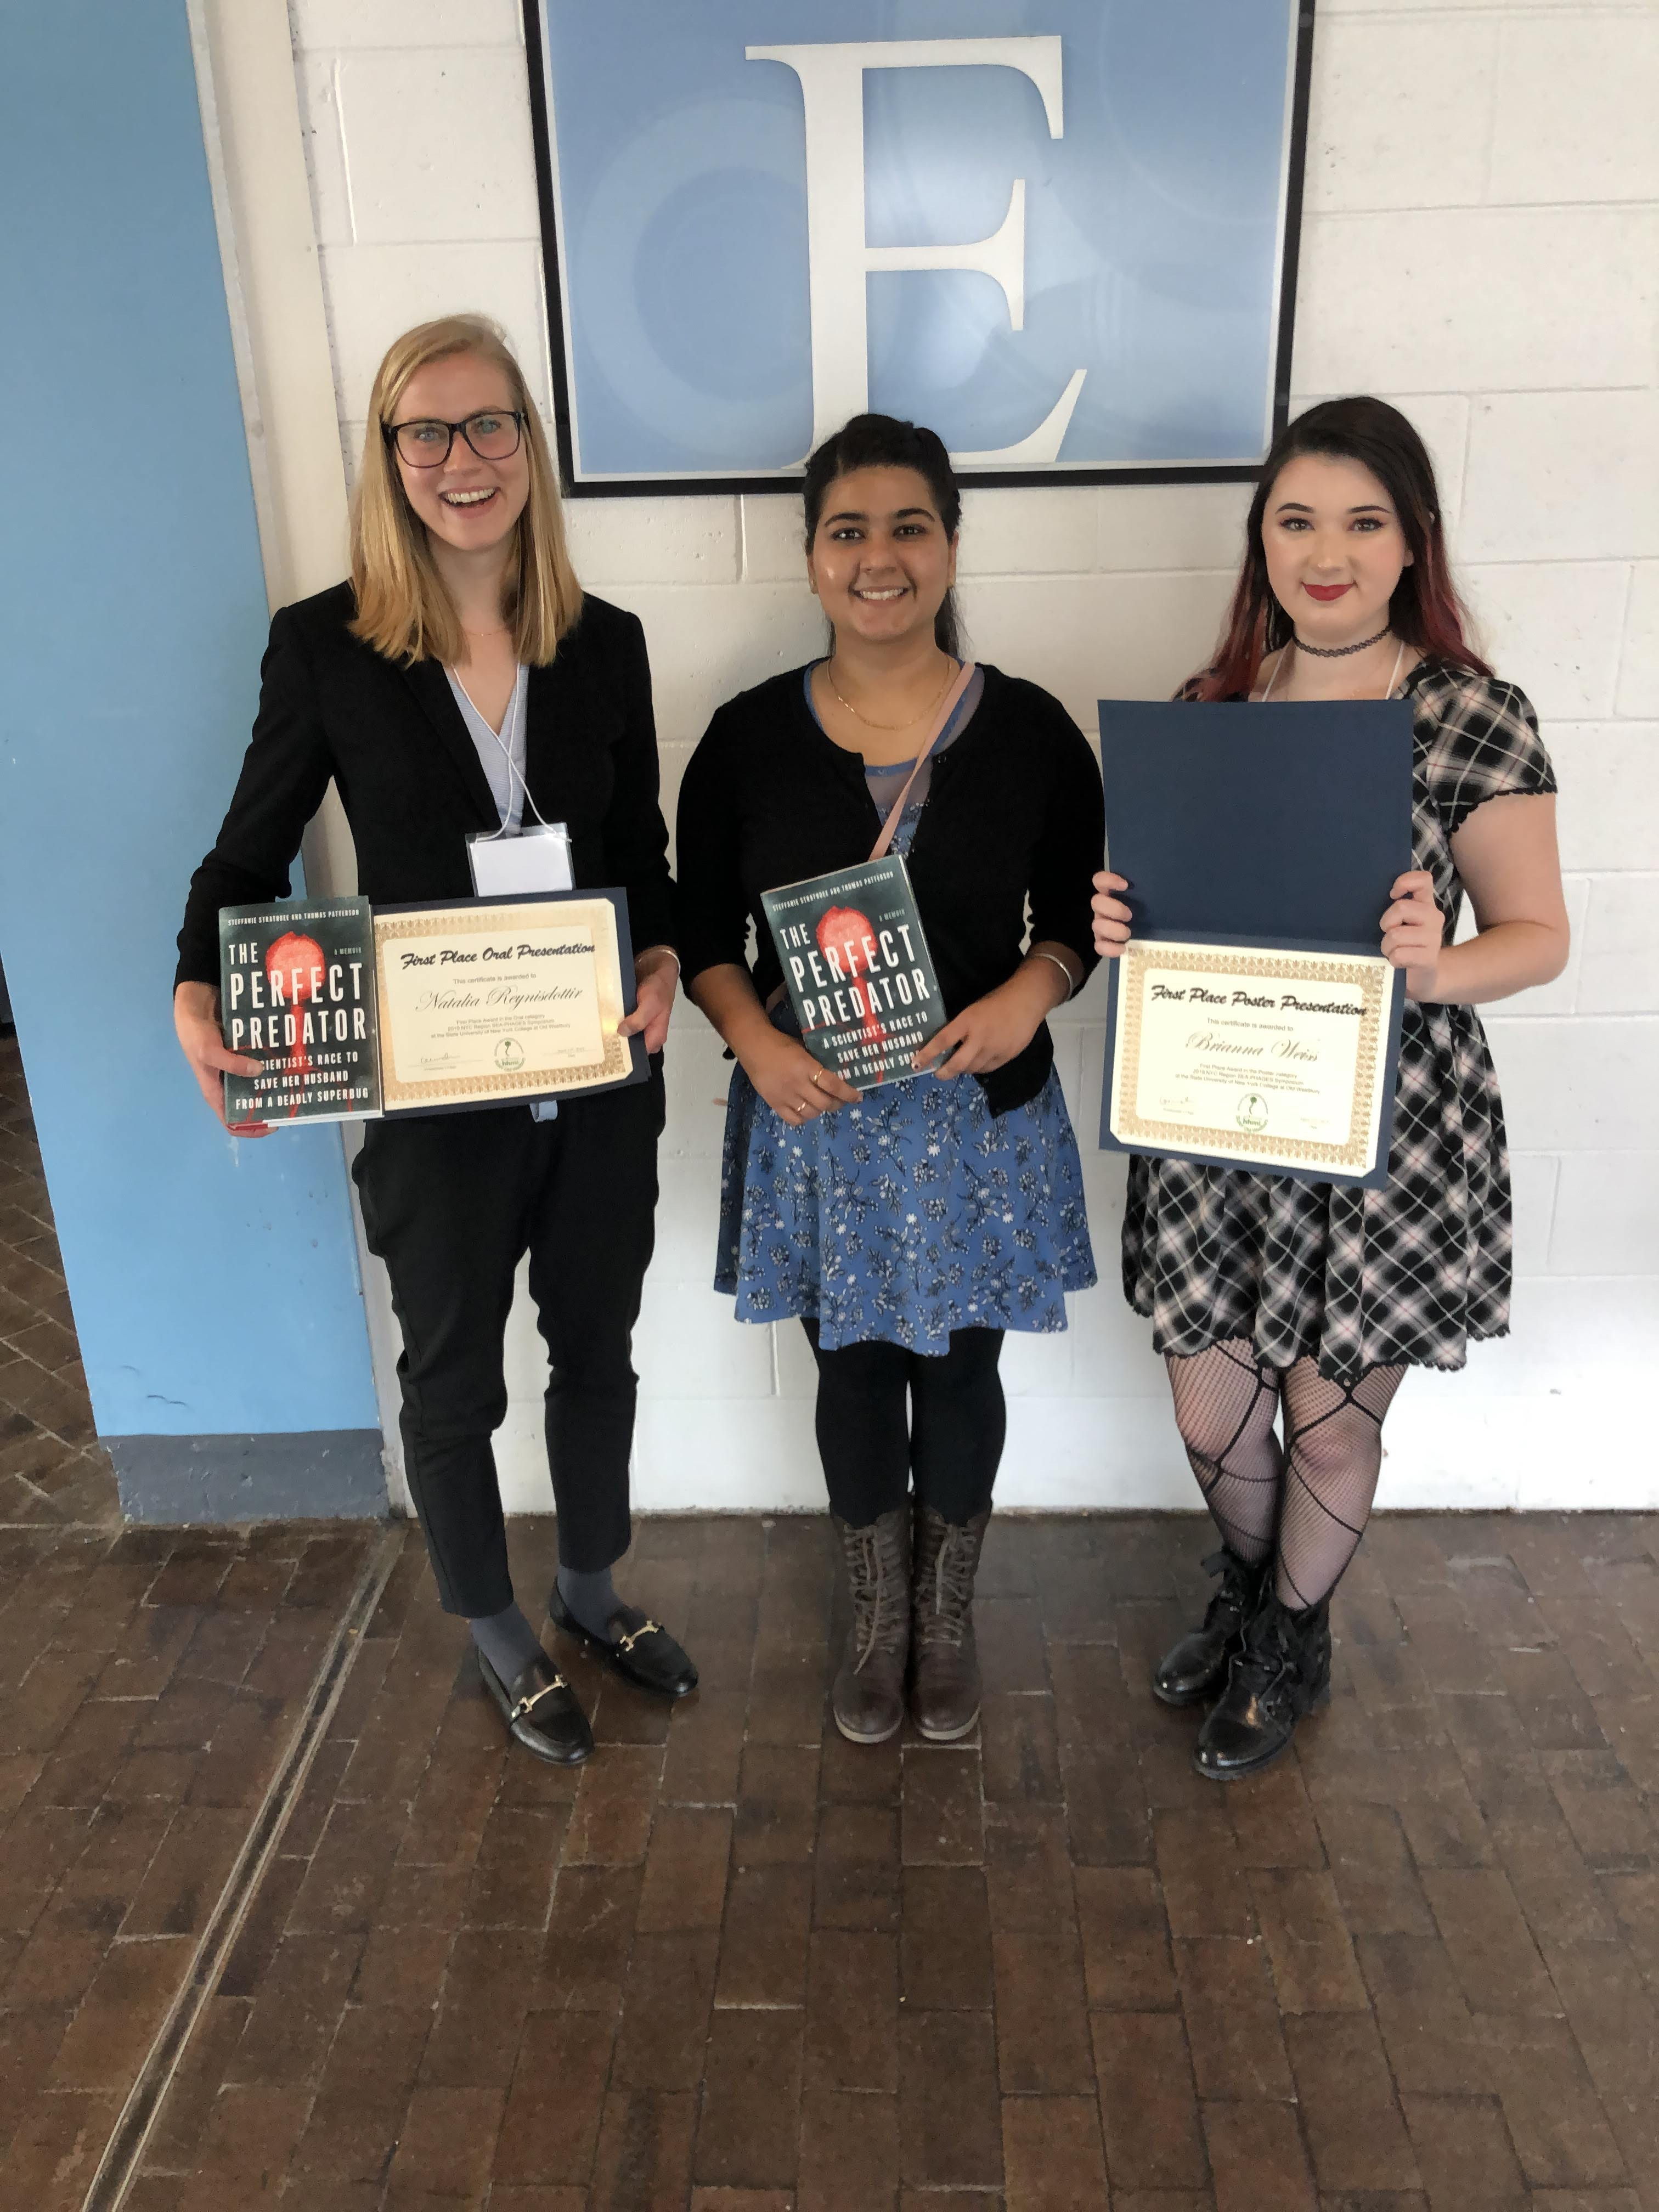 NYIT Life Science students, Natalia Reynisdottir, Lovejit Kaur and Brianna Weiss with their awards